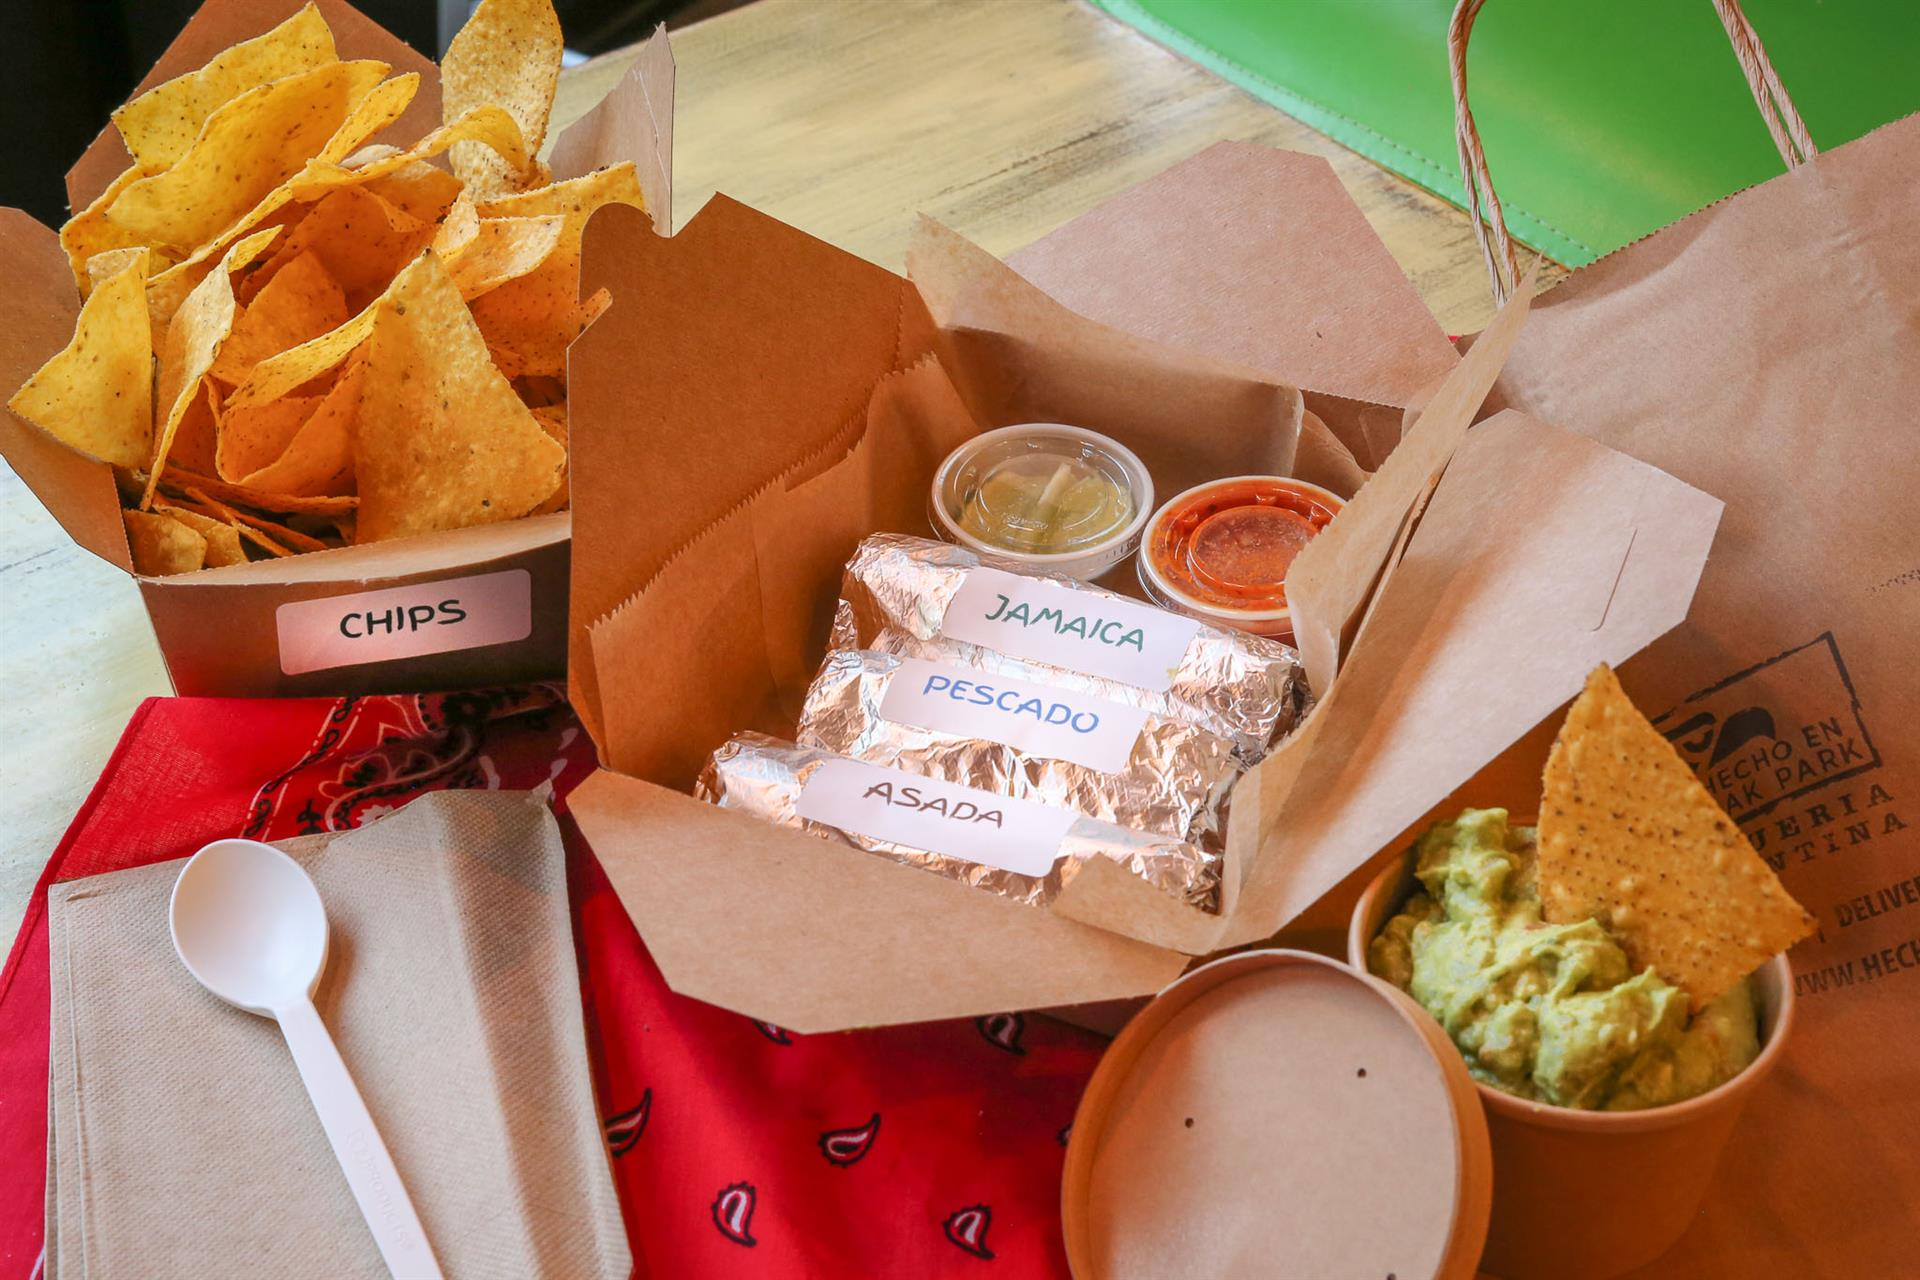 Takeout containers of chips, tacos, and guacamole spread out on a table